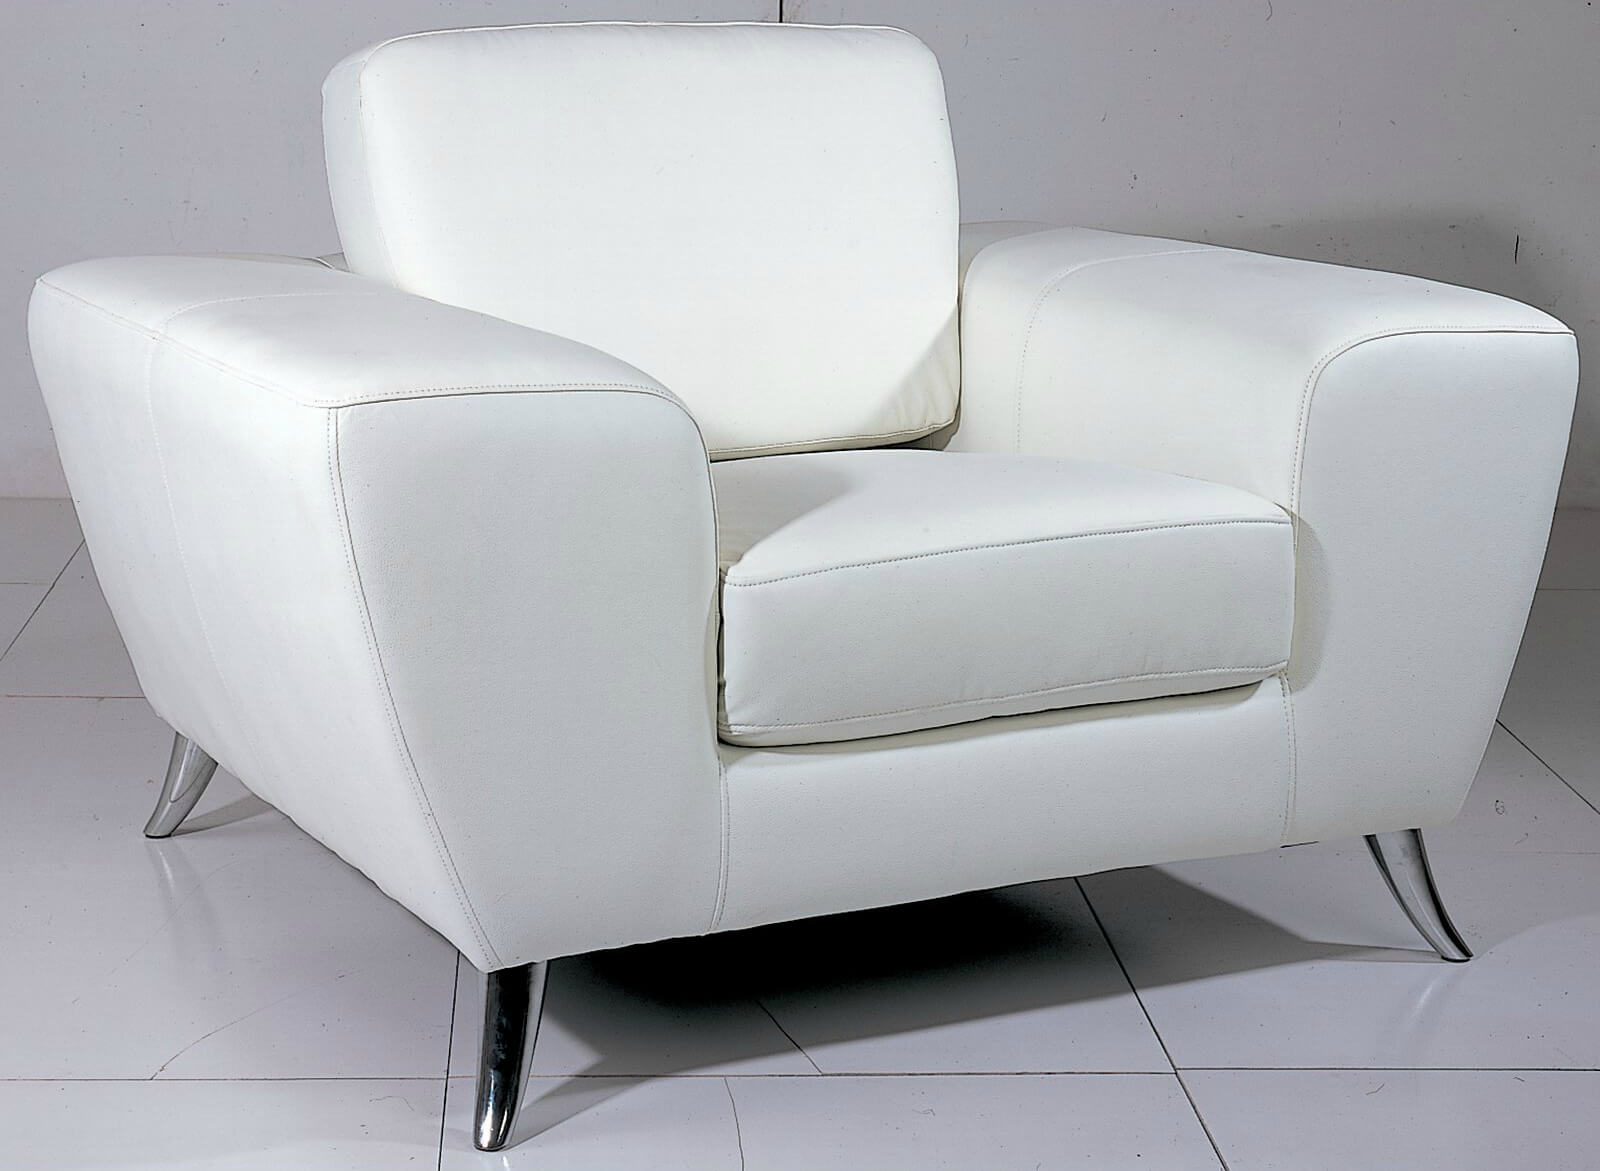 This top grain leather chair from Beverly Hills Furniture is constructed of kiln-dried hardwood with chromed metal legs, supporting polyurethane cushioning and removable back pillows in a unique, modern shape.